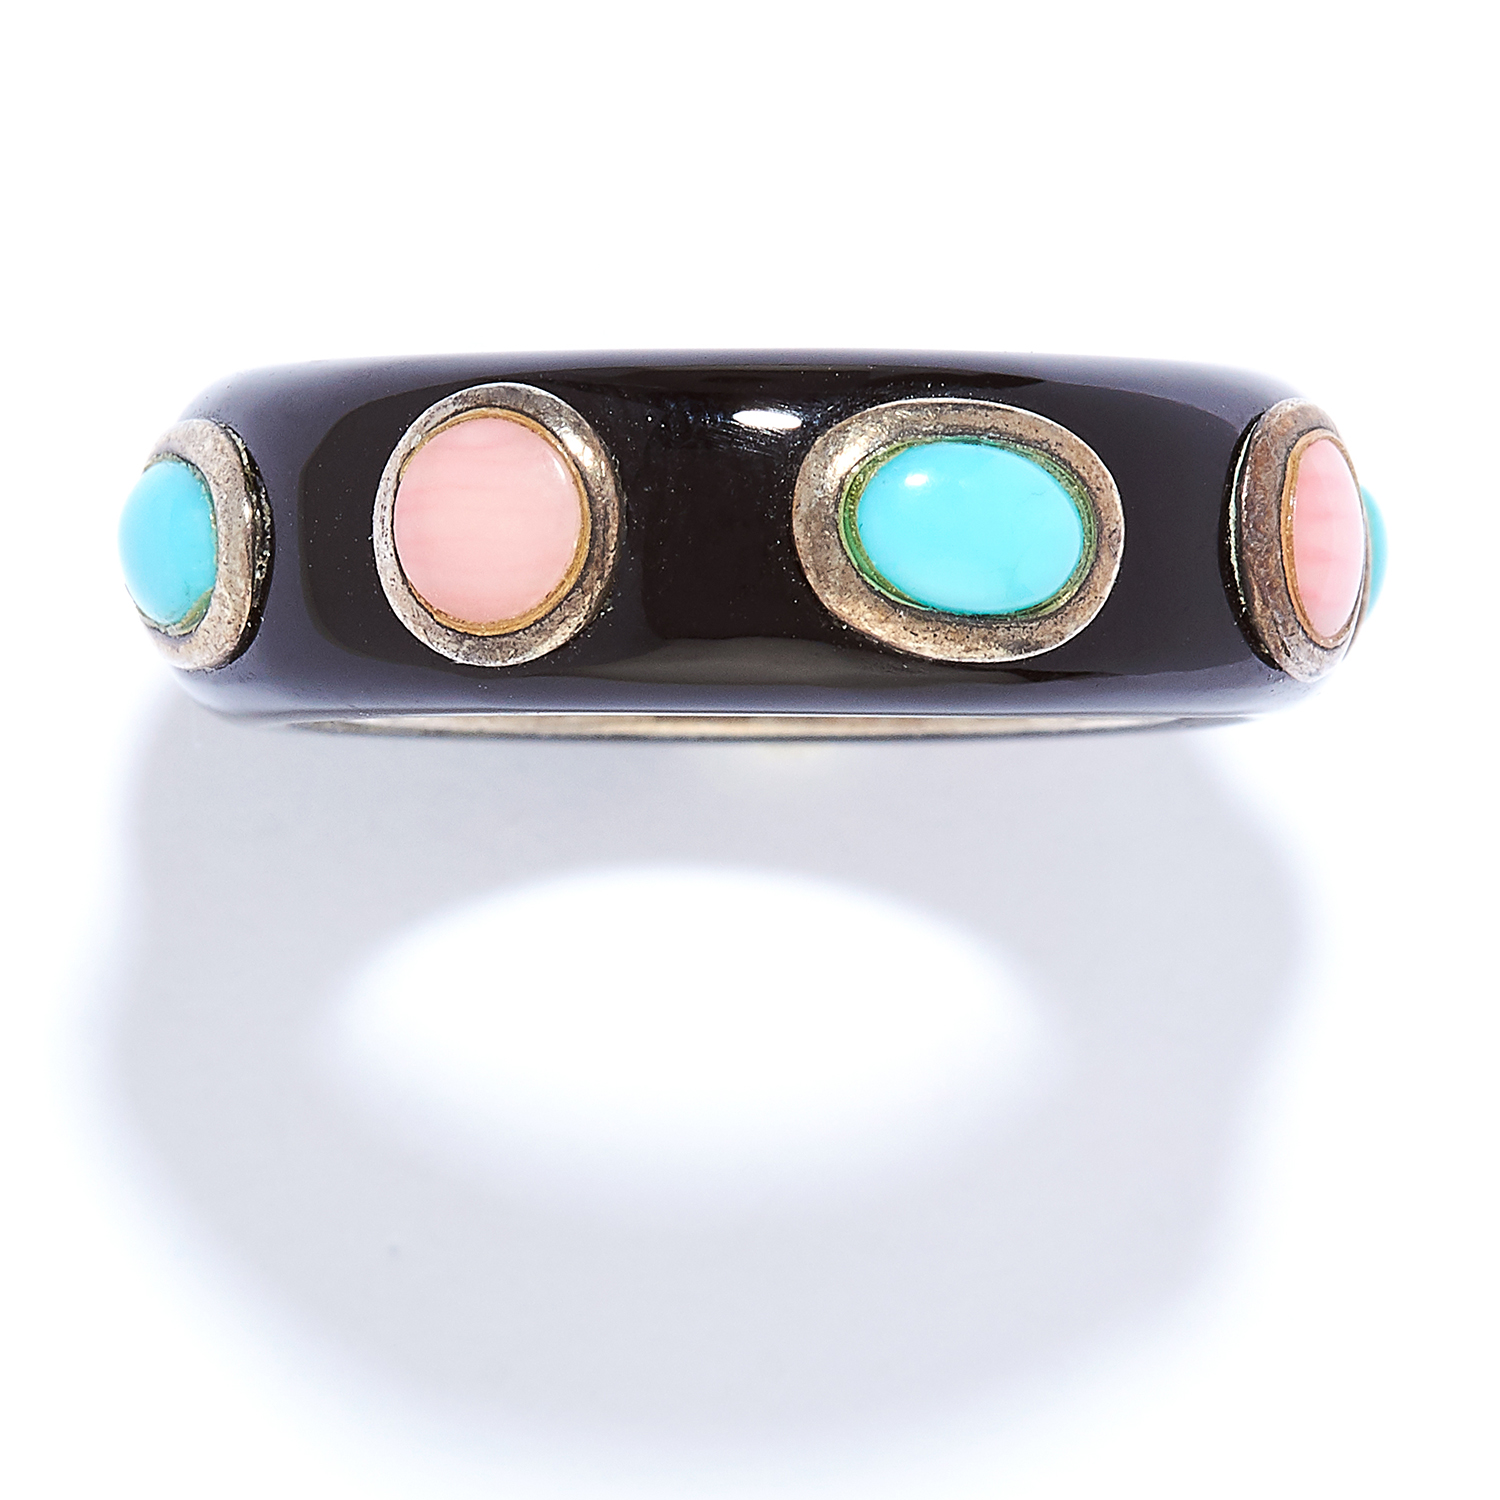 TURQUOISE, HARDSTONE AND ENAMEL RING in sterling silver, the black enamel studded with red hardstone